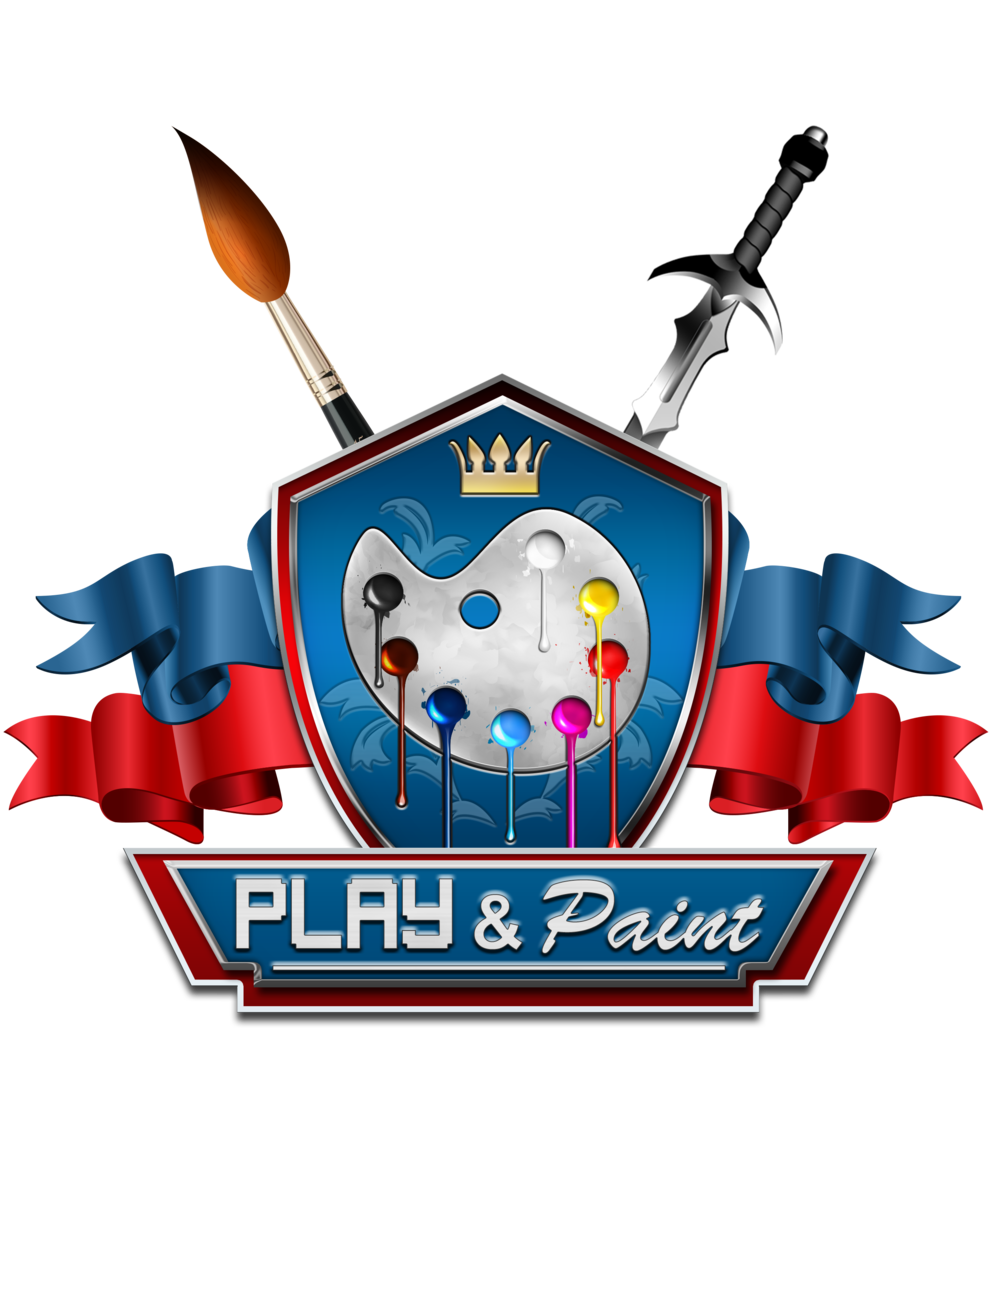 Play and Paint - Play and Paint is a welcome addition to Downtown Williamson. Operated by Josh and Kim McClanahan, the business is both an art studio that hosts painting classes for all ages and a gaming store where gamers of all types can socialize and join in on Pathfinder, D & D, Magic the Gathering, Yu-Gi-Oh, Pokemon, and much more. Josh and Kim will be living up to their namesake at Willcon as Josh will be hosting our gaming room and card tournaments while Kim will be face painting and displaying her artwork.